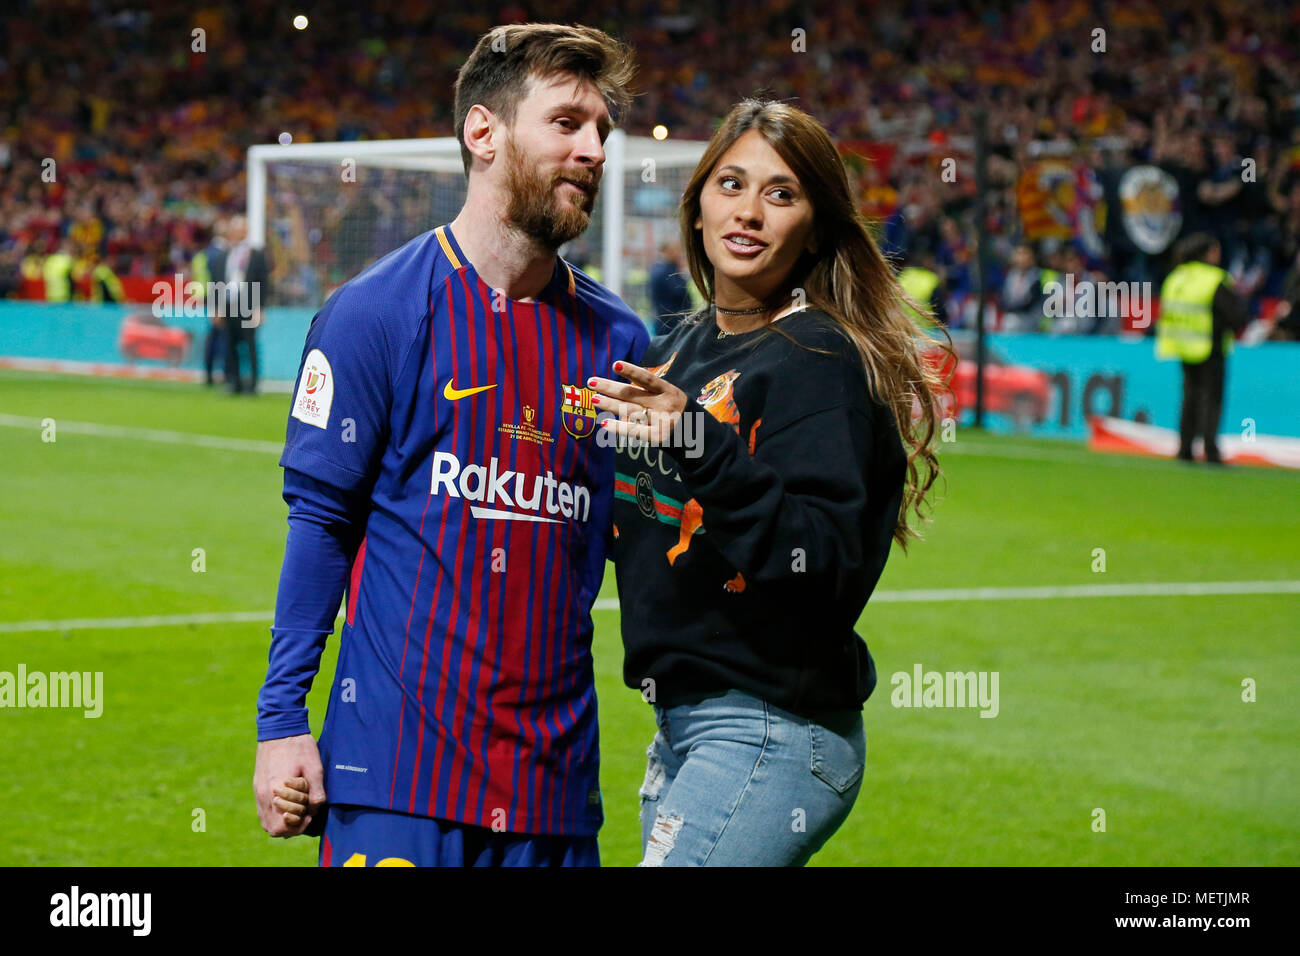 09eeff85c39 Lionel Messi And Wife Stock Photos   Lionel Messi And Wife Stock ...